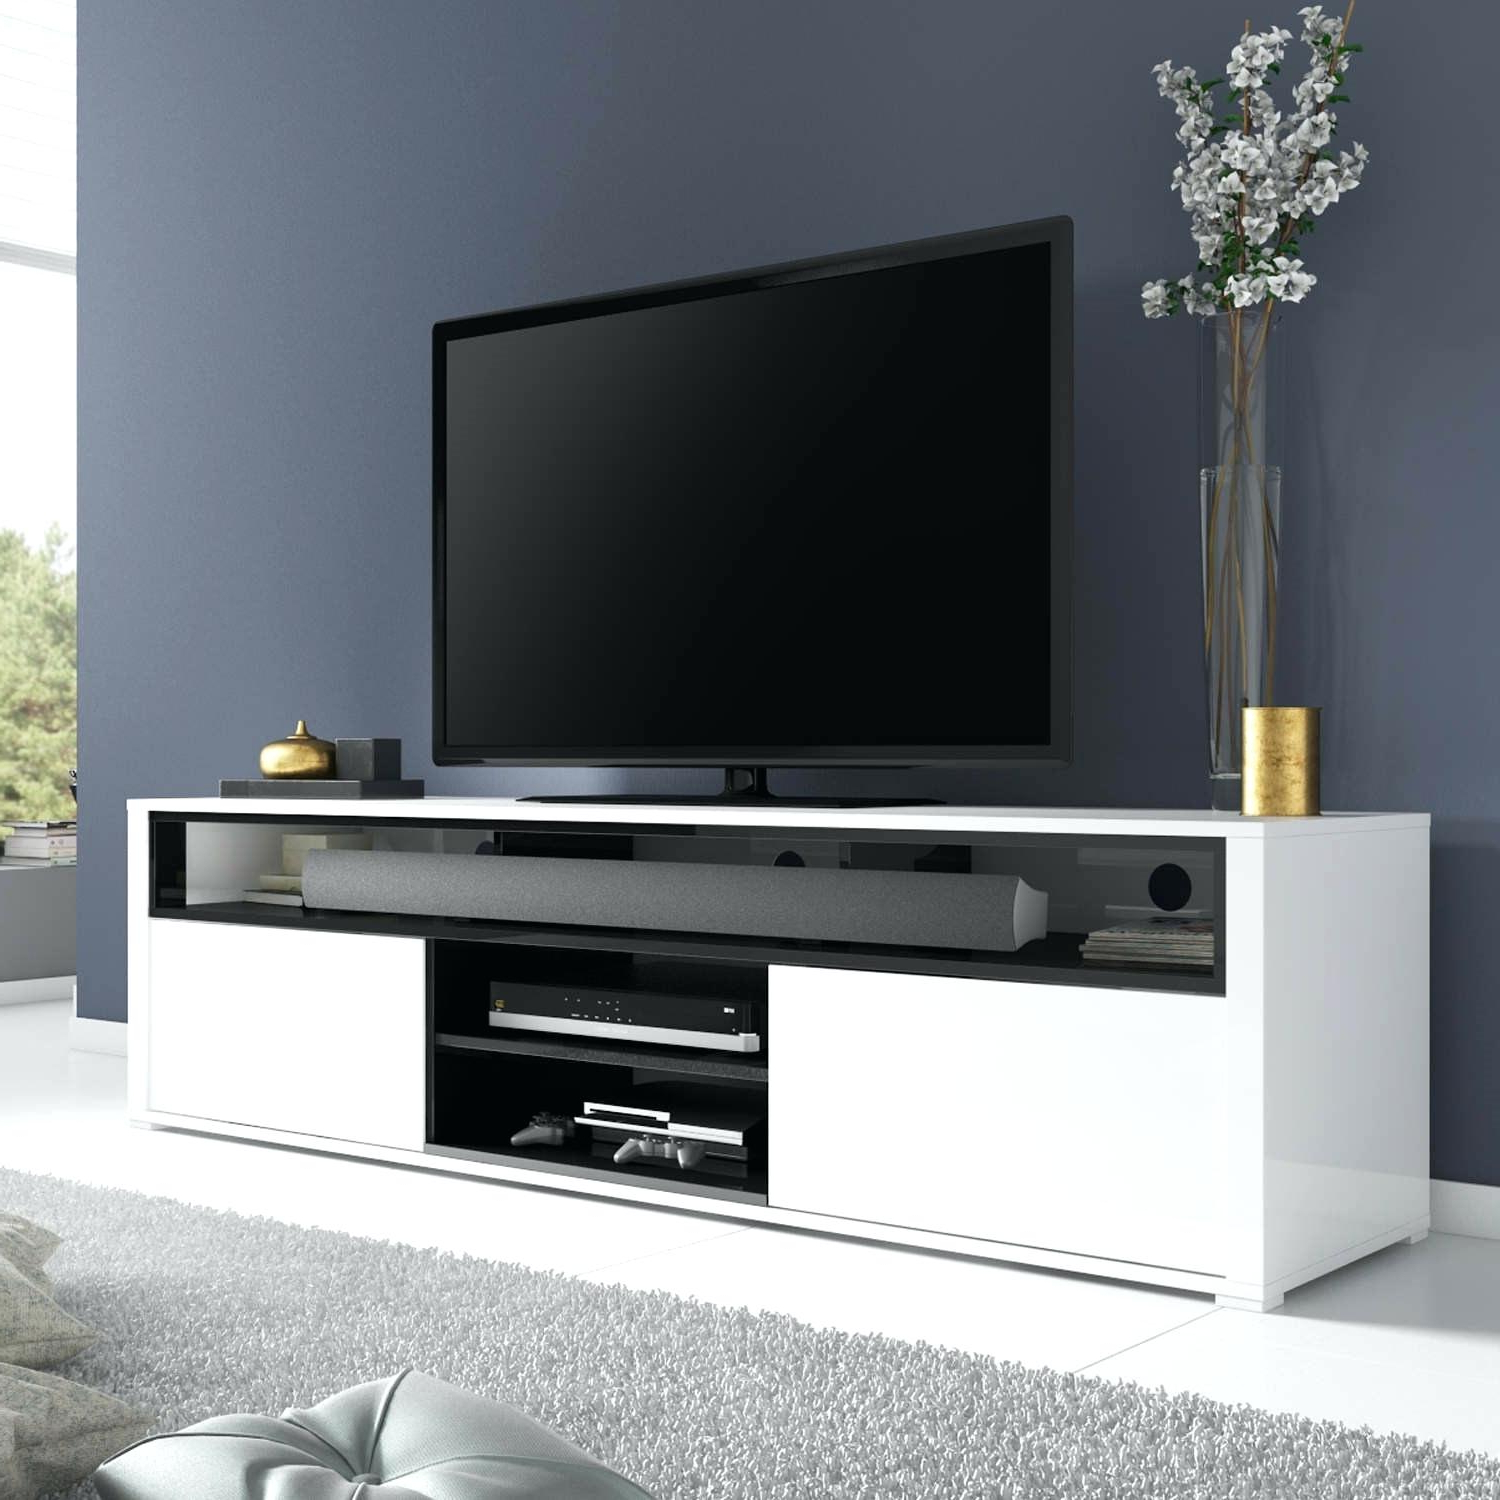 2017 Ikea White Tv Stand Italian Lacquer Dining Room Sets Shiny Bedroom For Shiny Tv Stands (View 9 of 20)